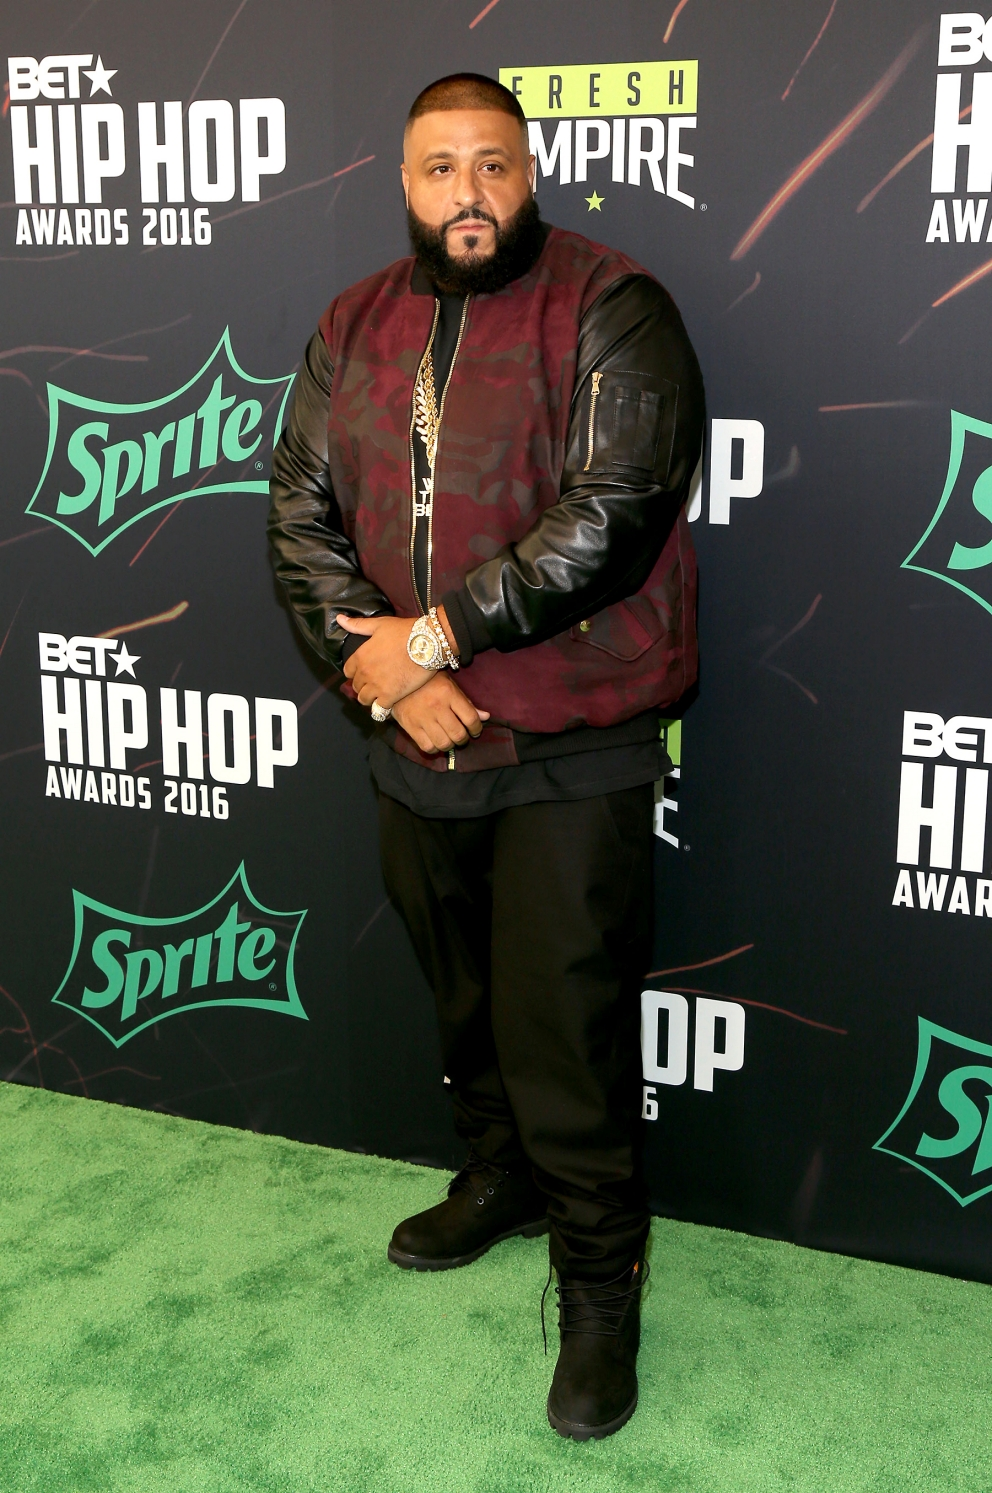 091716-shows-hha-red-carpet-rundown-dj-khaled-2